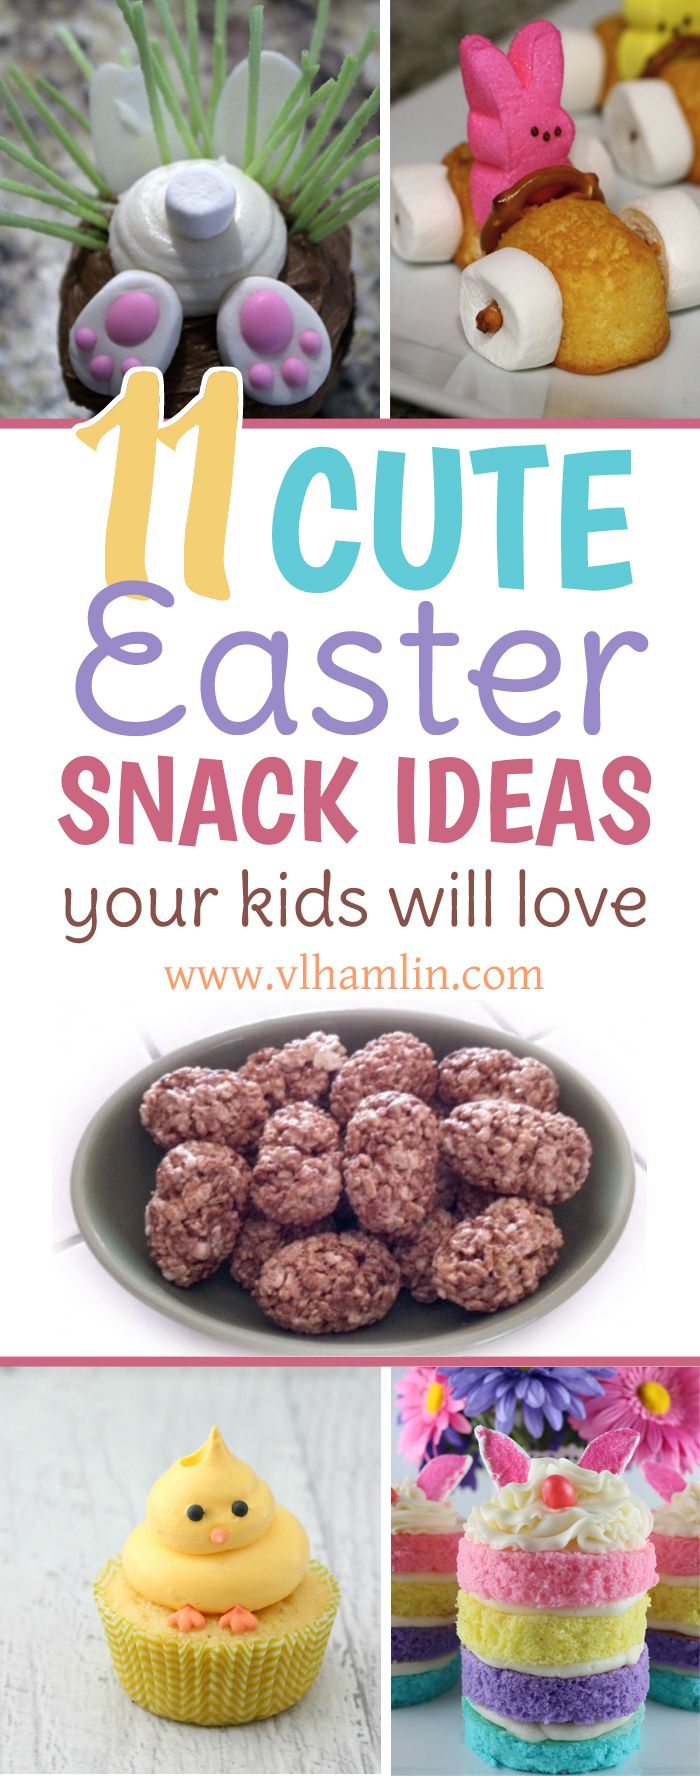 11 cute easter snack ideas your kids will love life design snacks 11 cute easter snack ideas your kids will love life design snacks ideas and easter baskets negle Gallery